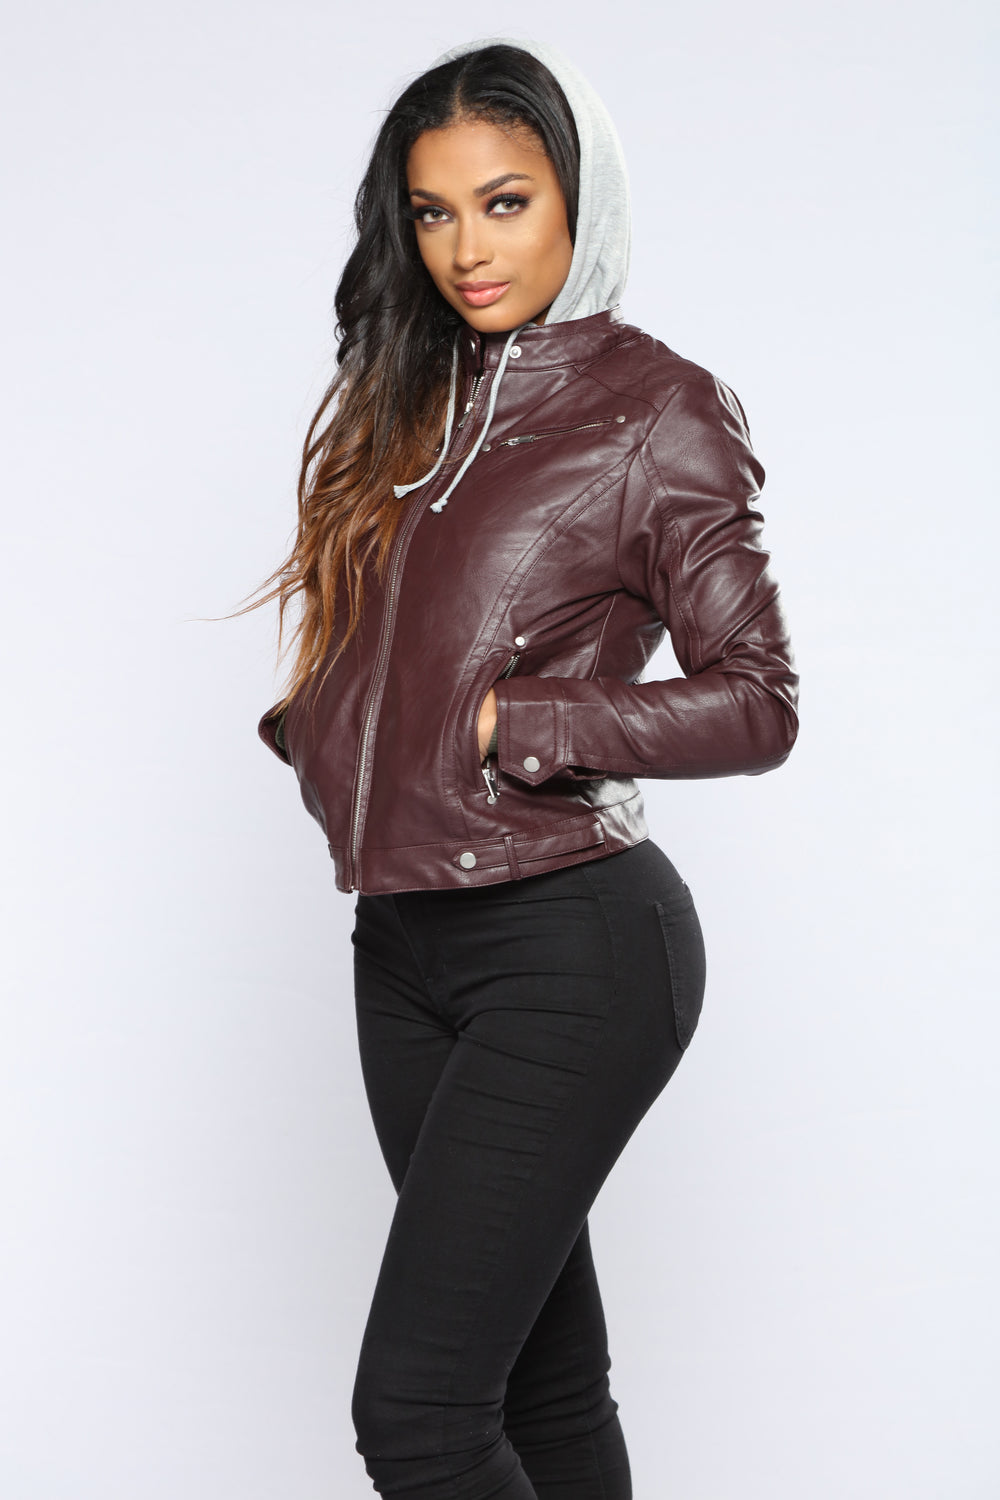 Alexa Faux Leather Jacket - Plum